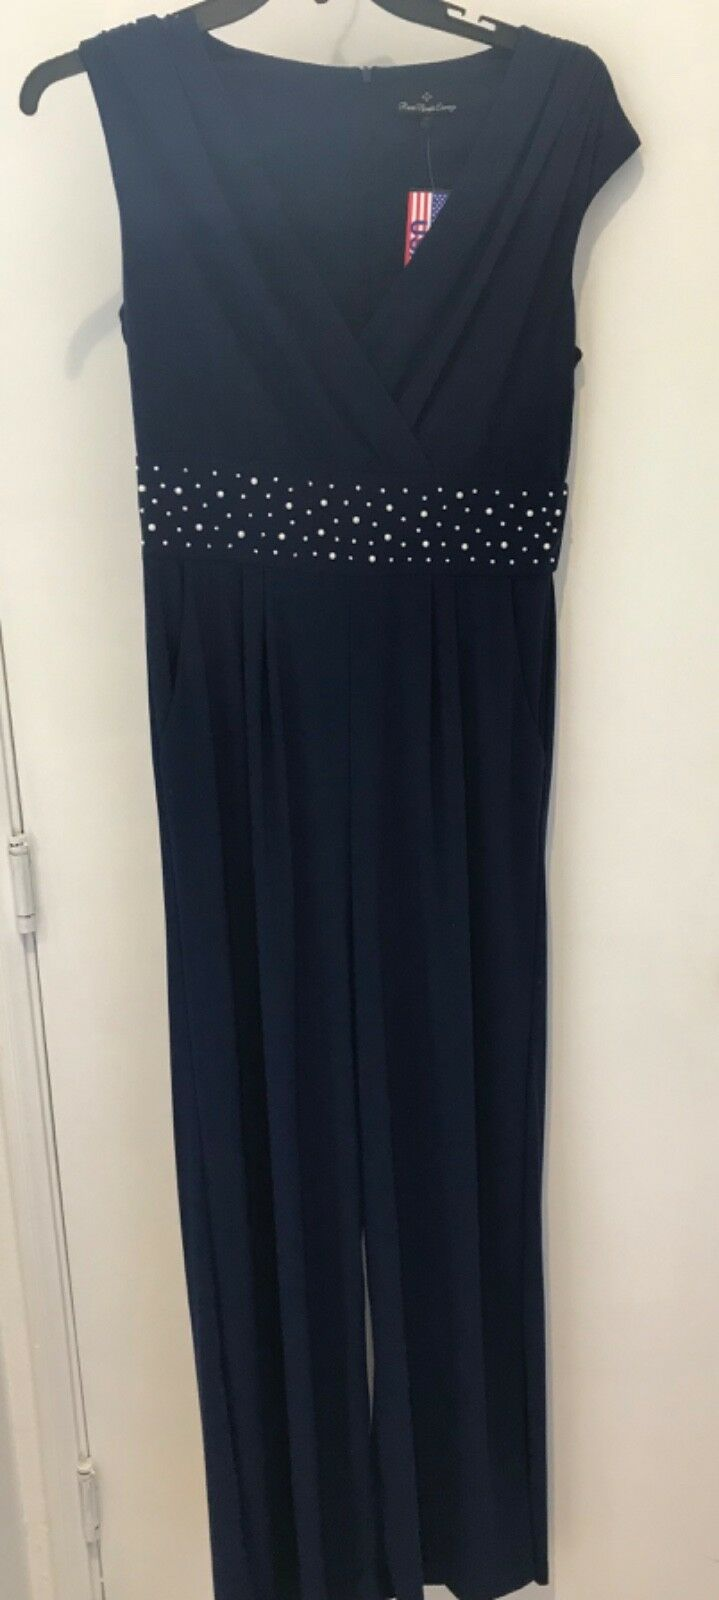 Ronnie Nicole Evenings Women's Navy size 12 Sleeveless Jumpsuit Romper NWT